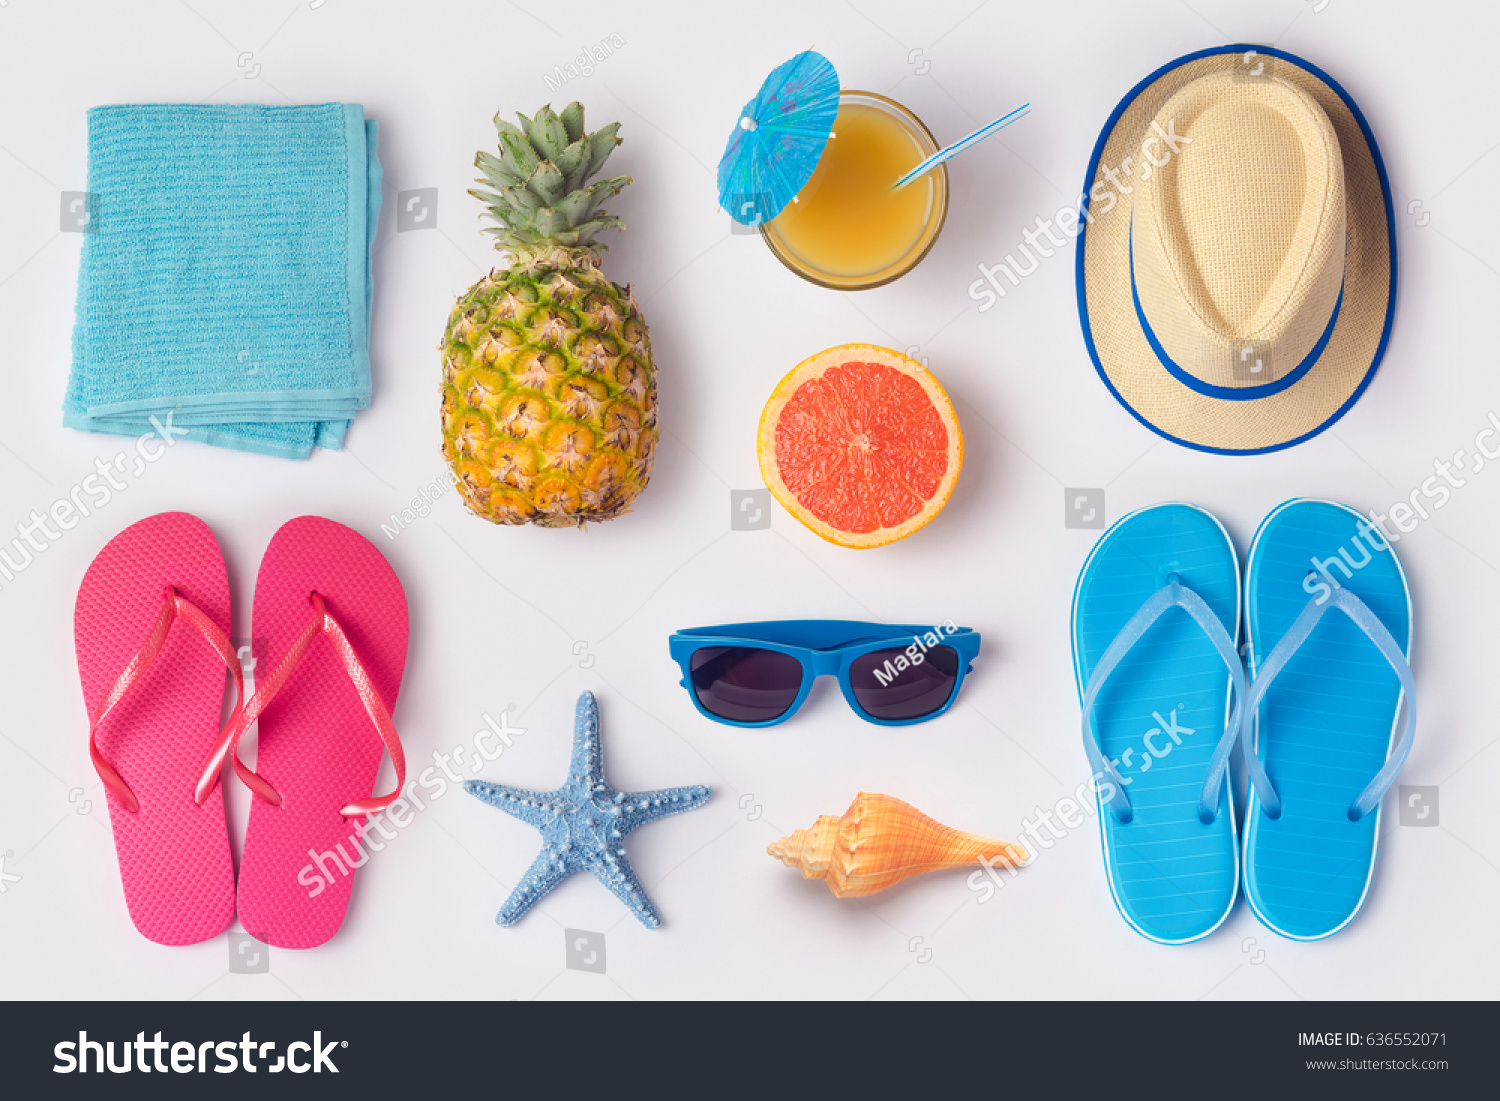 Tropical summer vacation concept with pineapple, juice and flip flops organized on white background. View from above. Flat lay #636552071